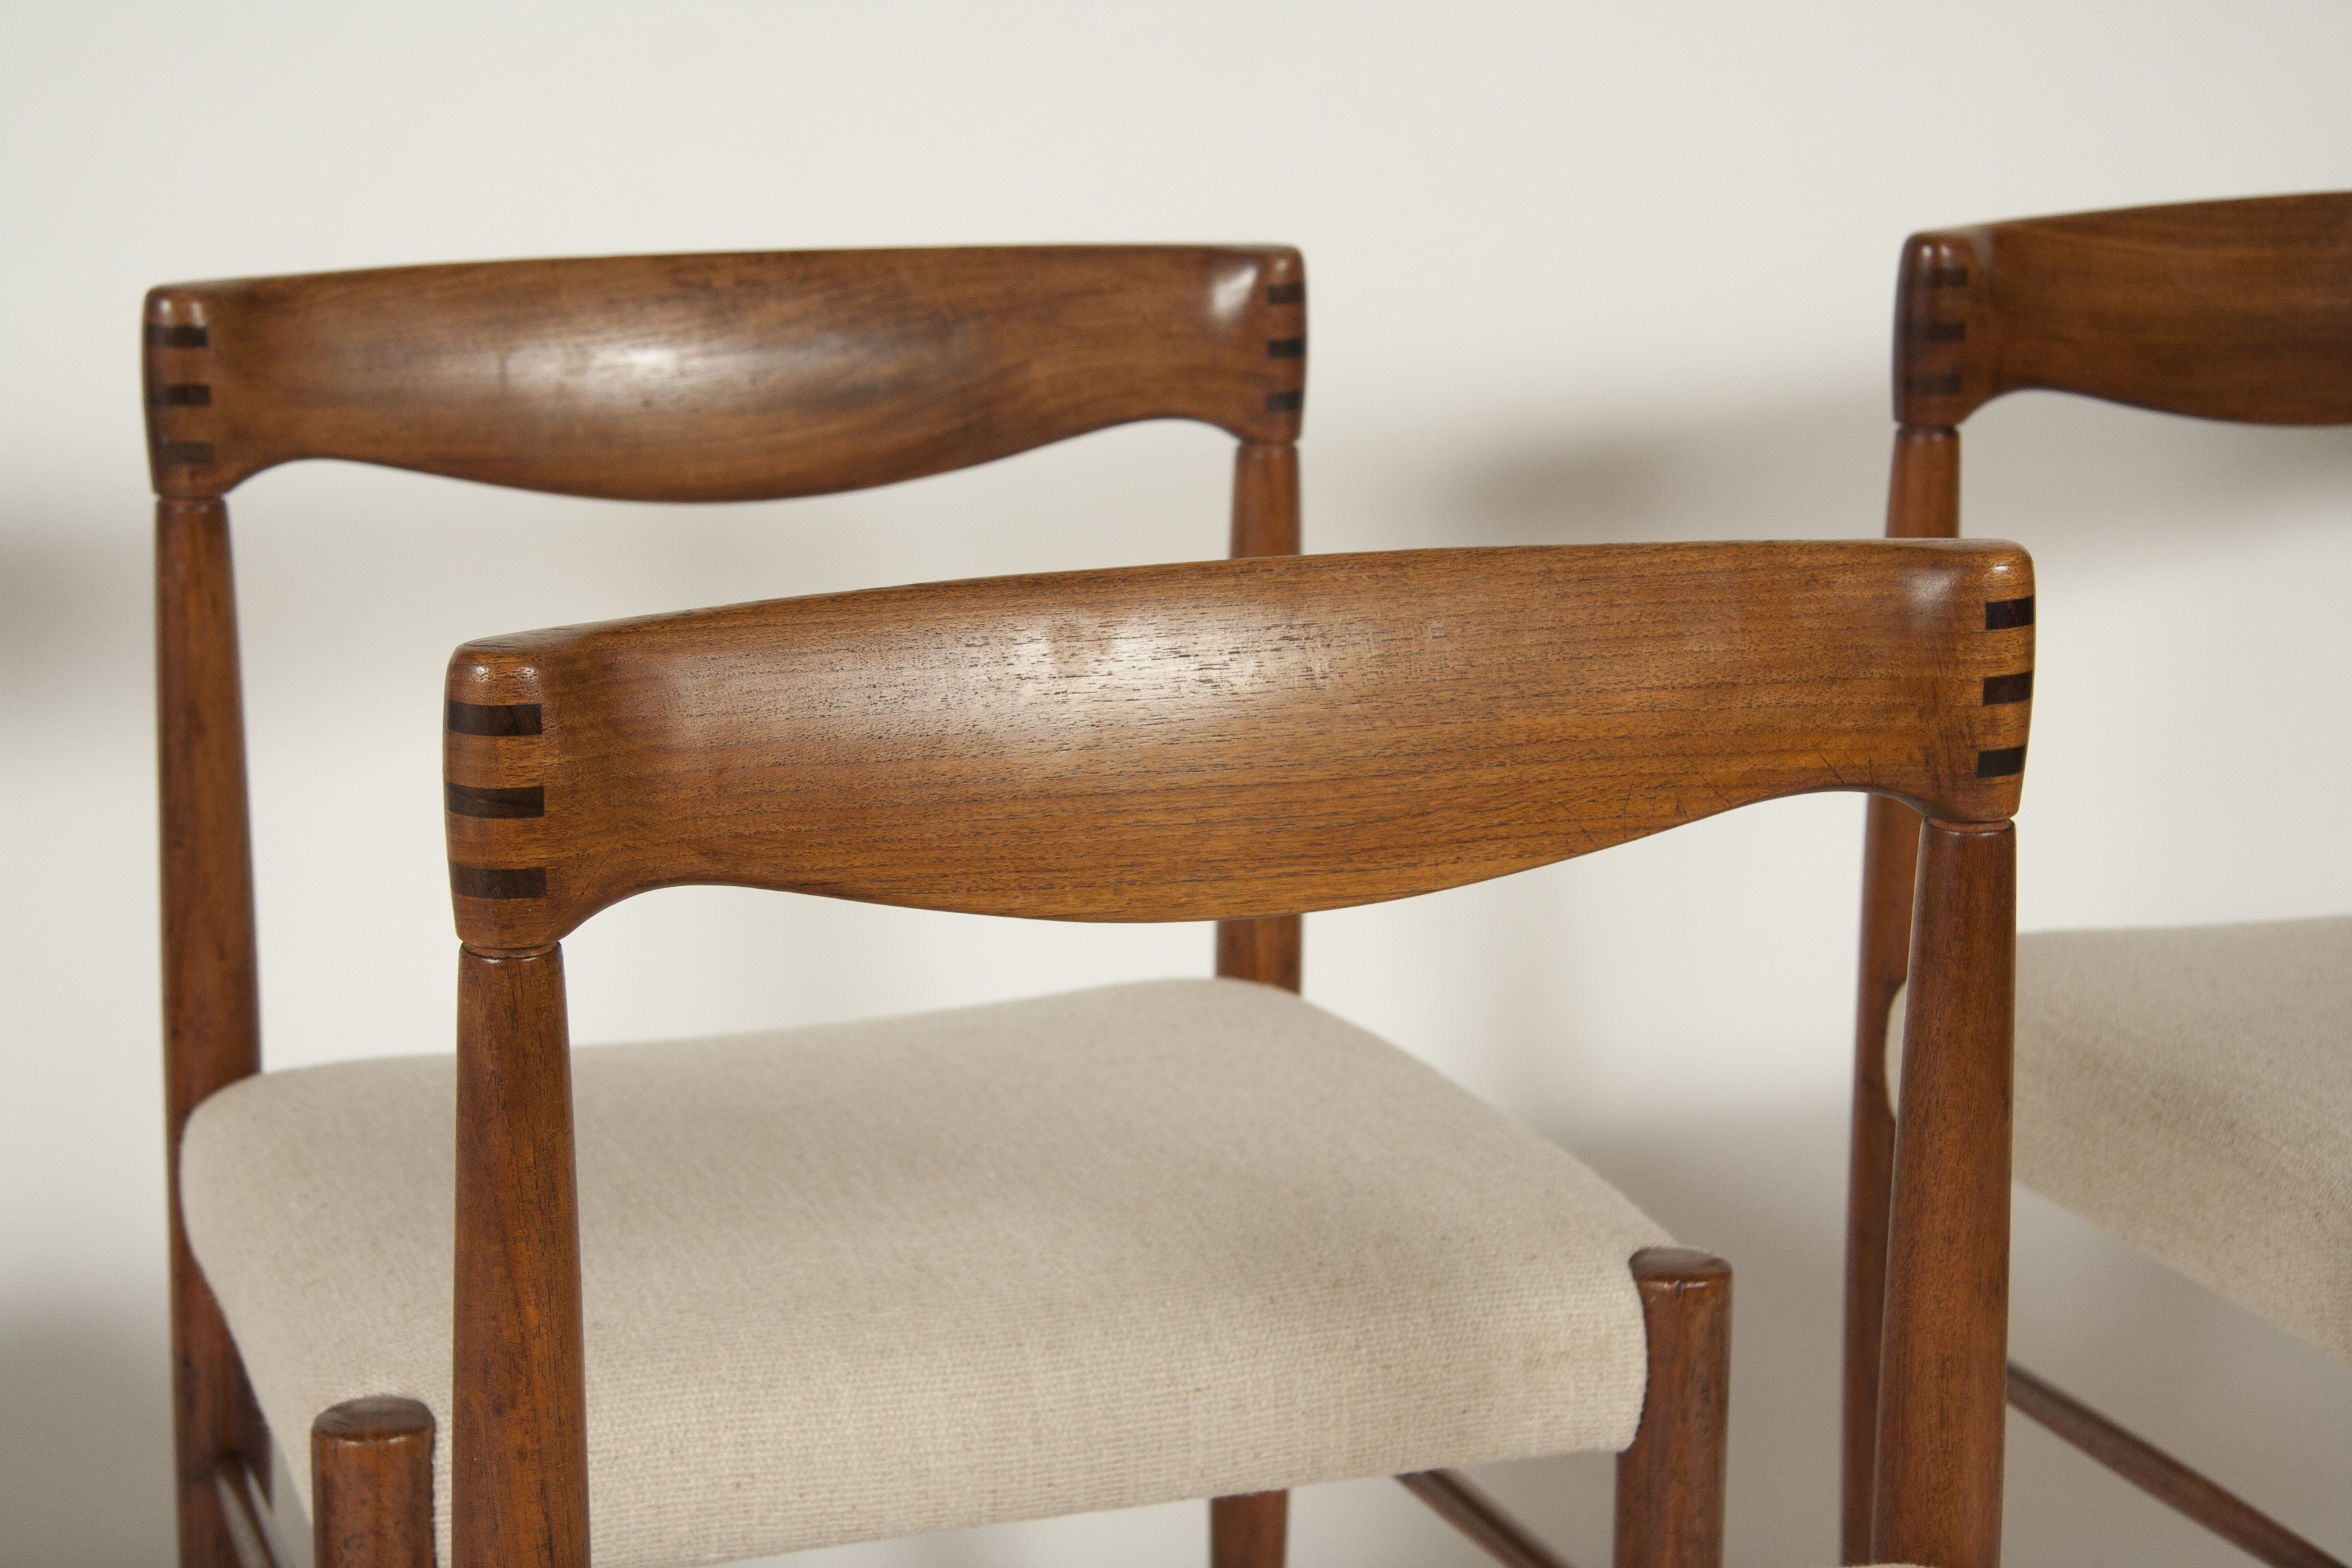 A Set of Four Teak Dining Chairs Designed by H.W. Klein